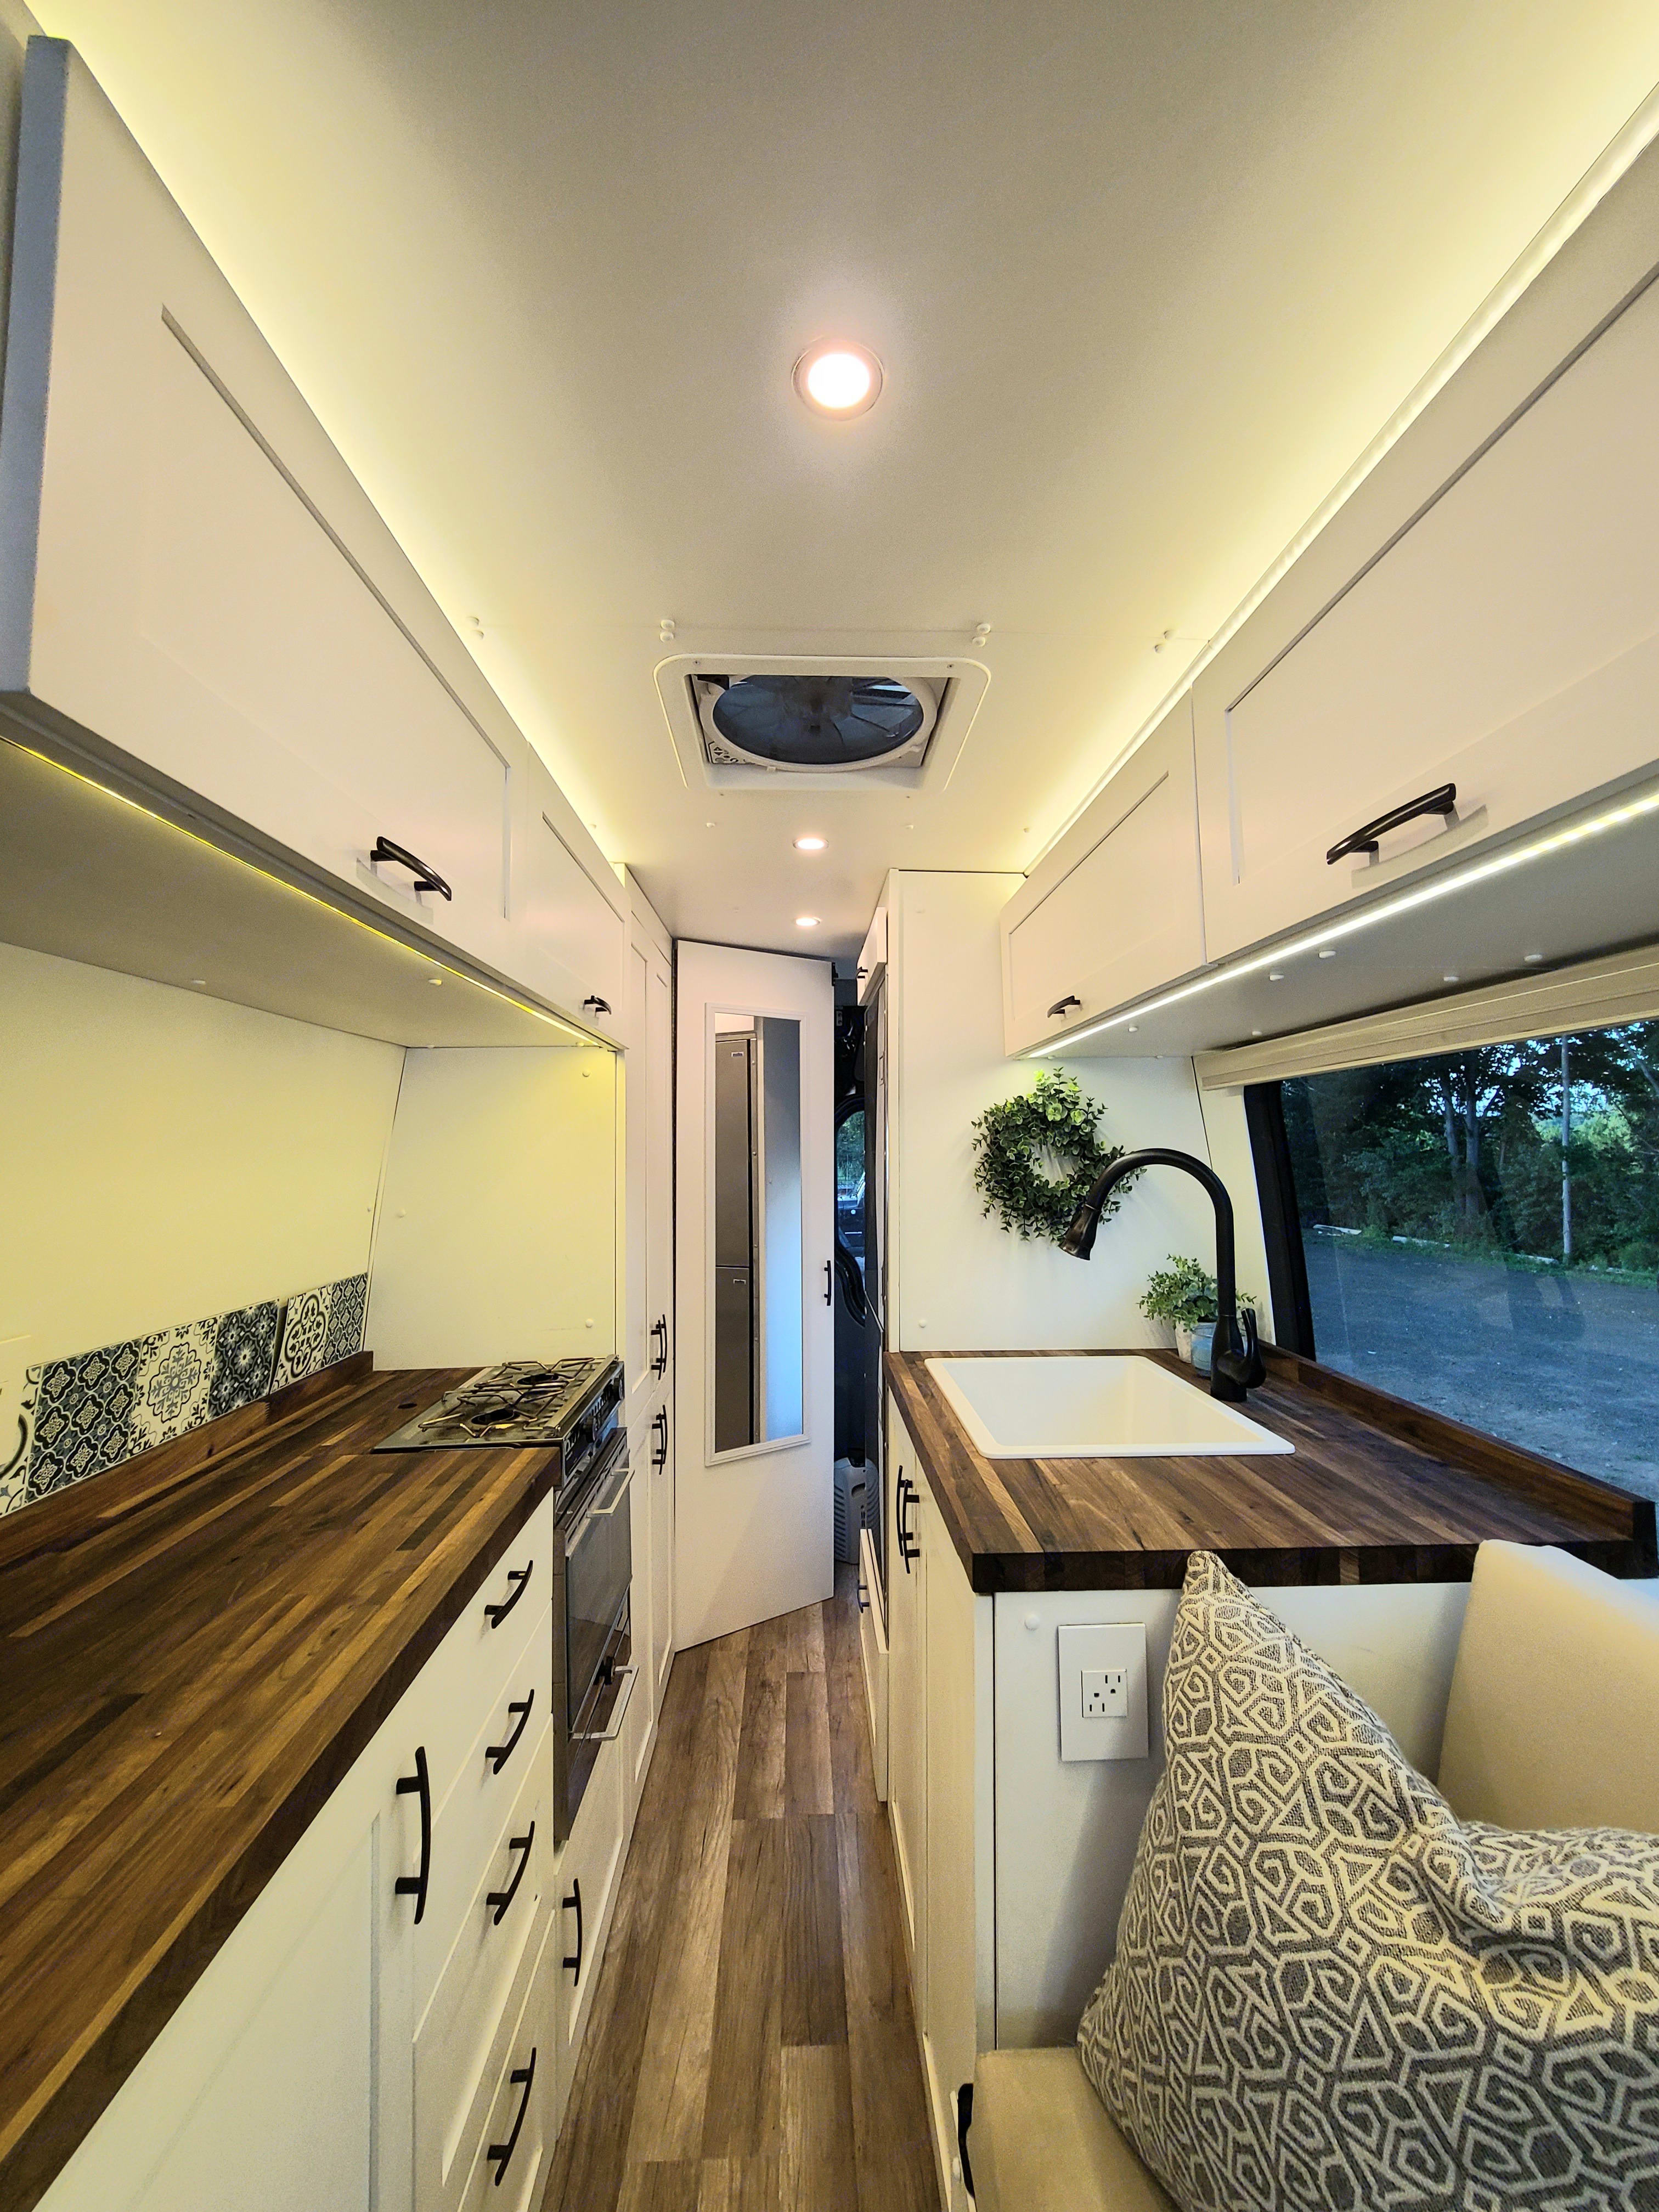 Plenty of lighting options including under cabinets, LED recessed trim lights down hall with dimmer and in back bath/storage area lighting. Mercedes Sprinter 2014